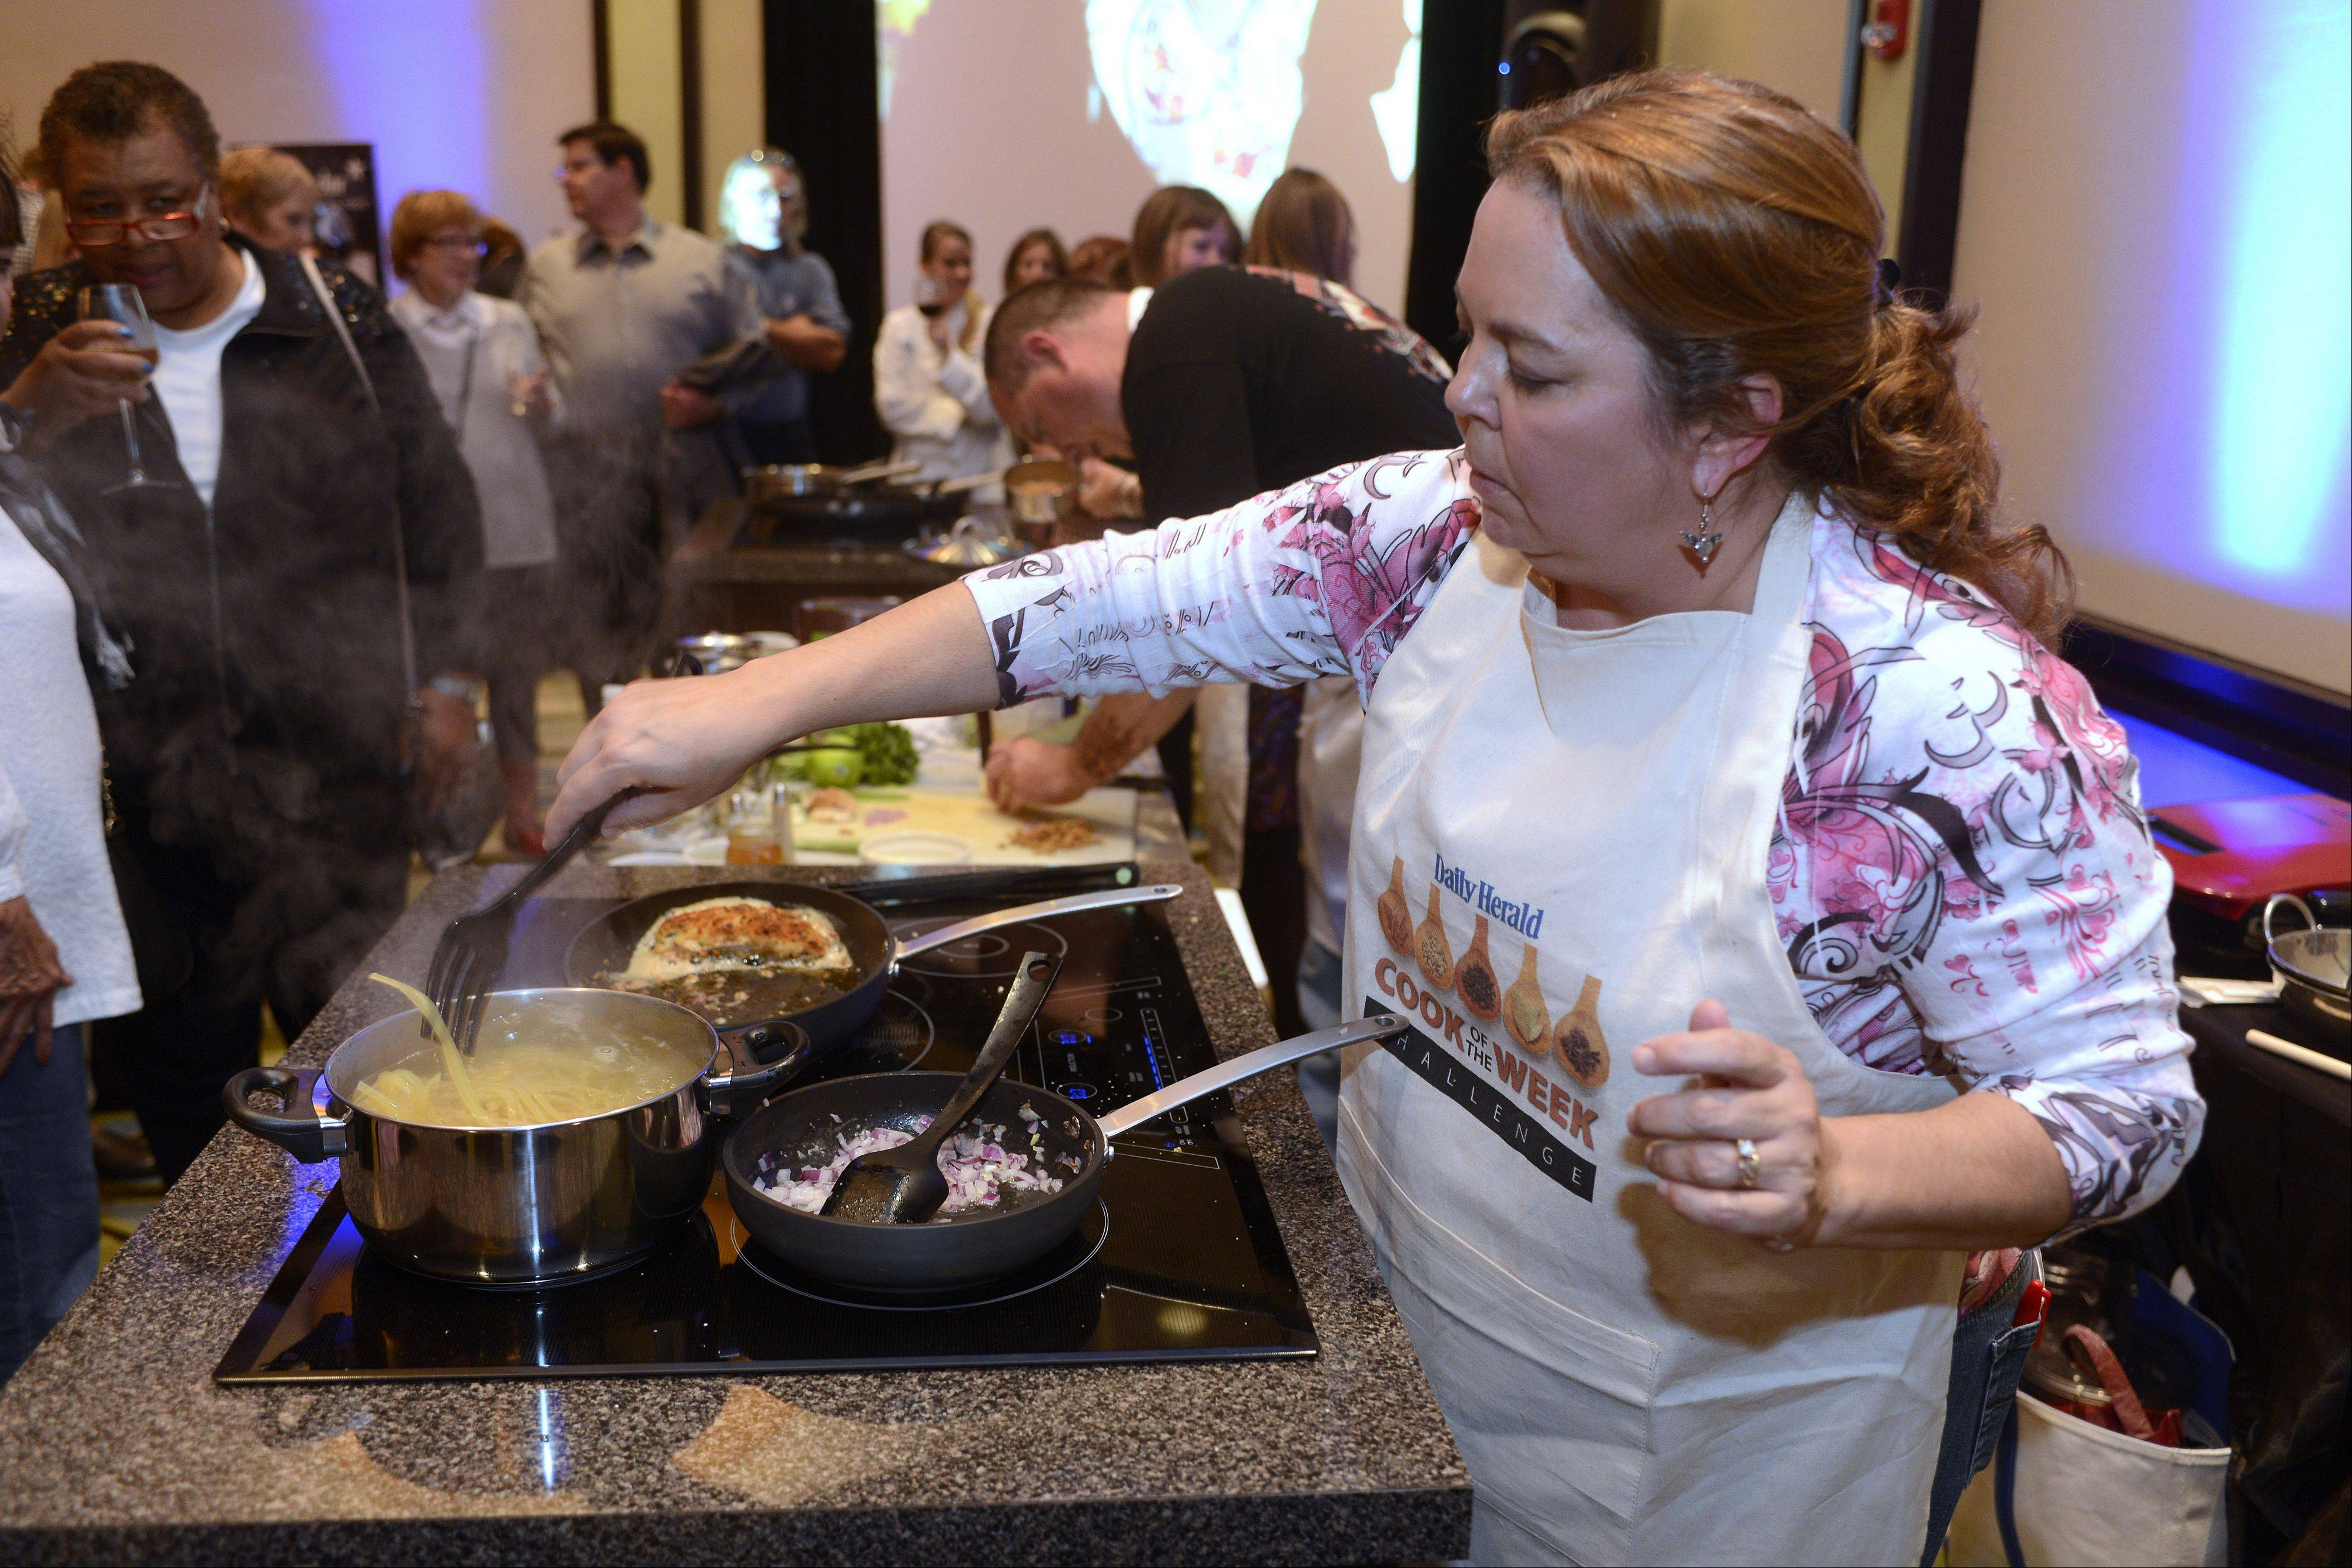 Lori Wiktorek of Aurora puts pasta on to boil as she prepares her dish at the Daily Herald Cook of the Week Challenge Cook-off.